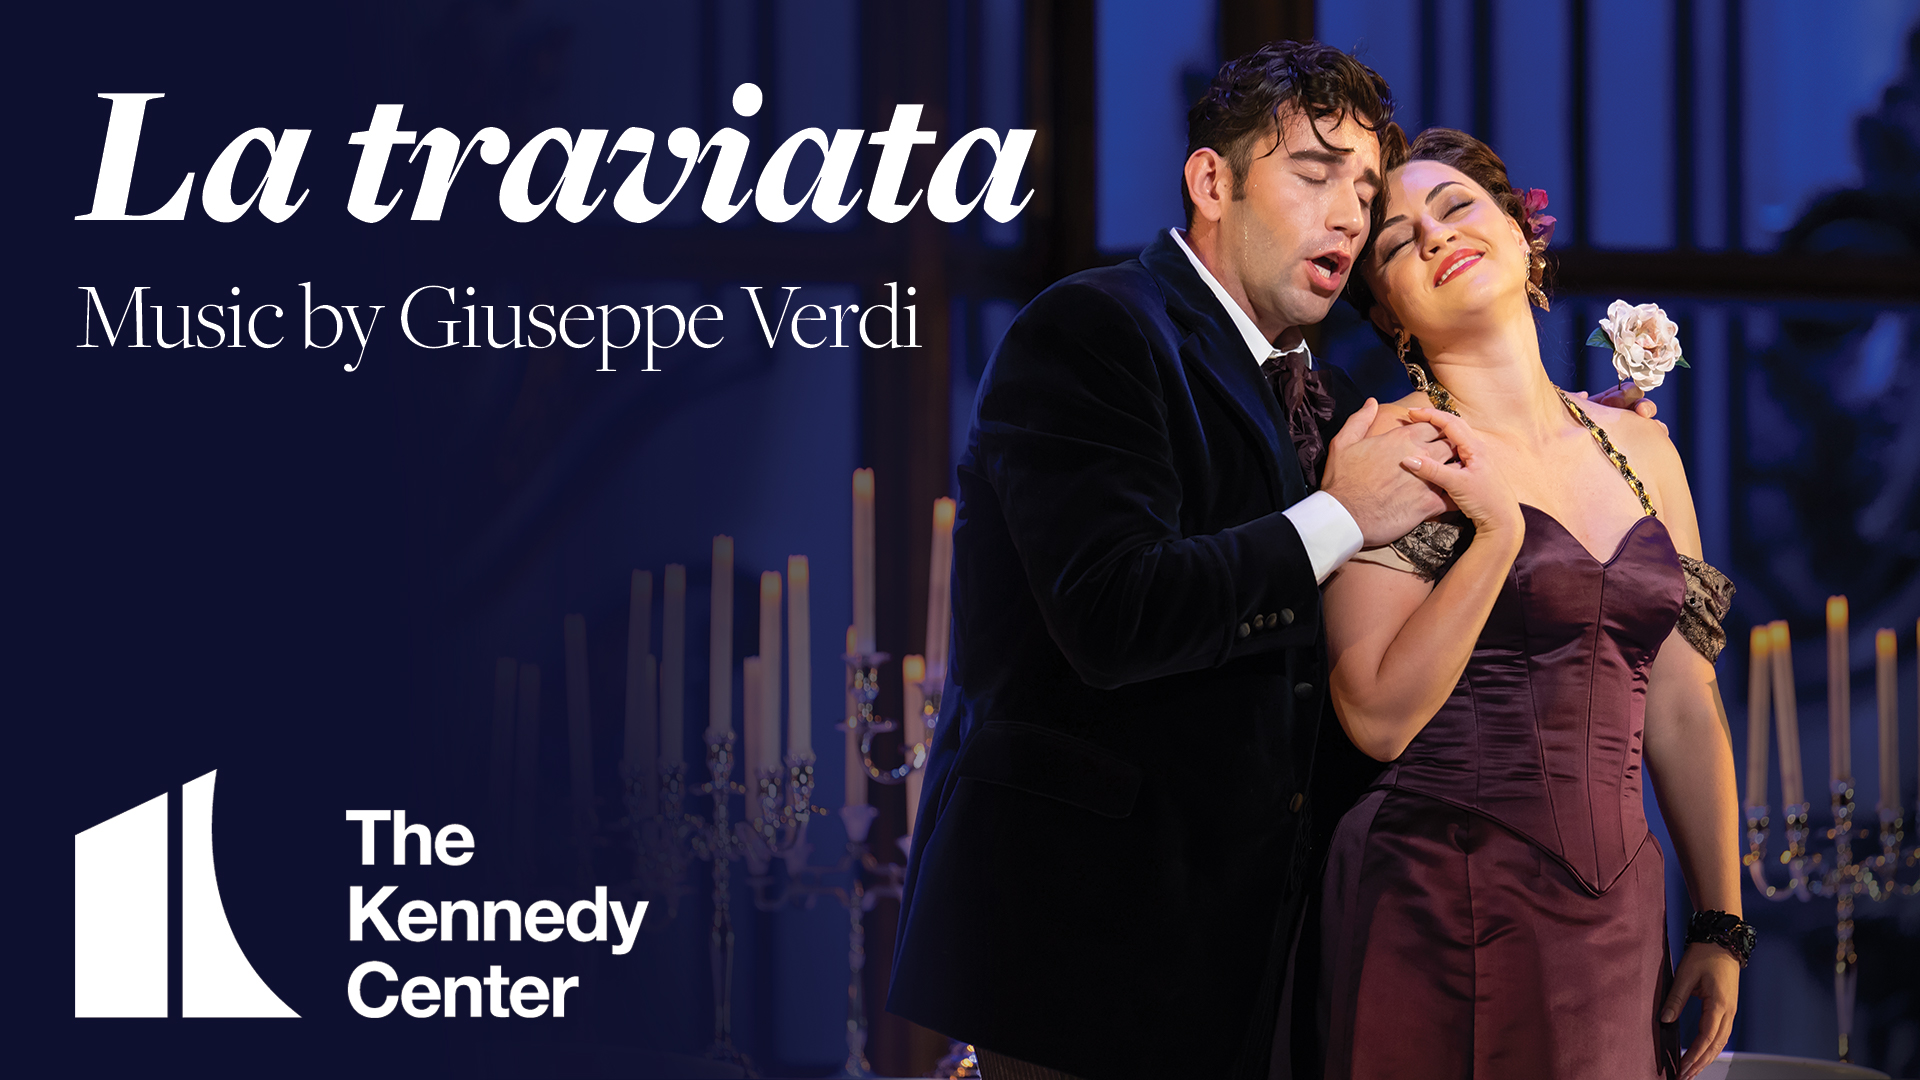 La traviata at The Kennedy Center